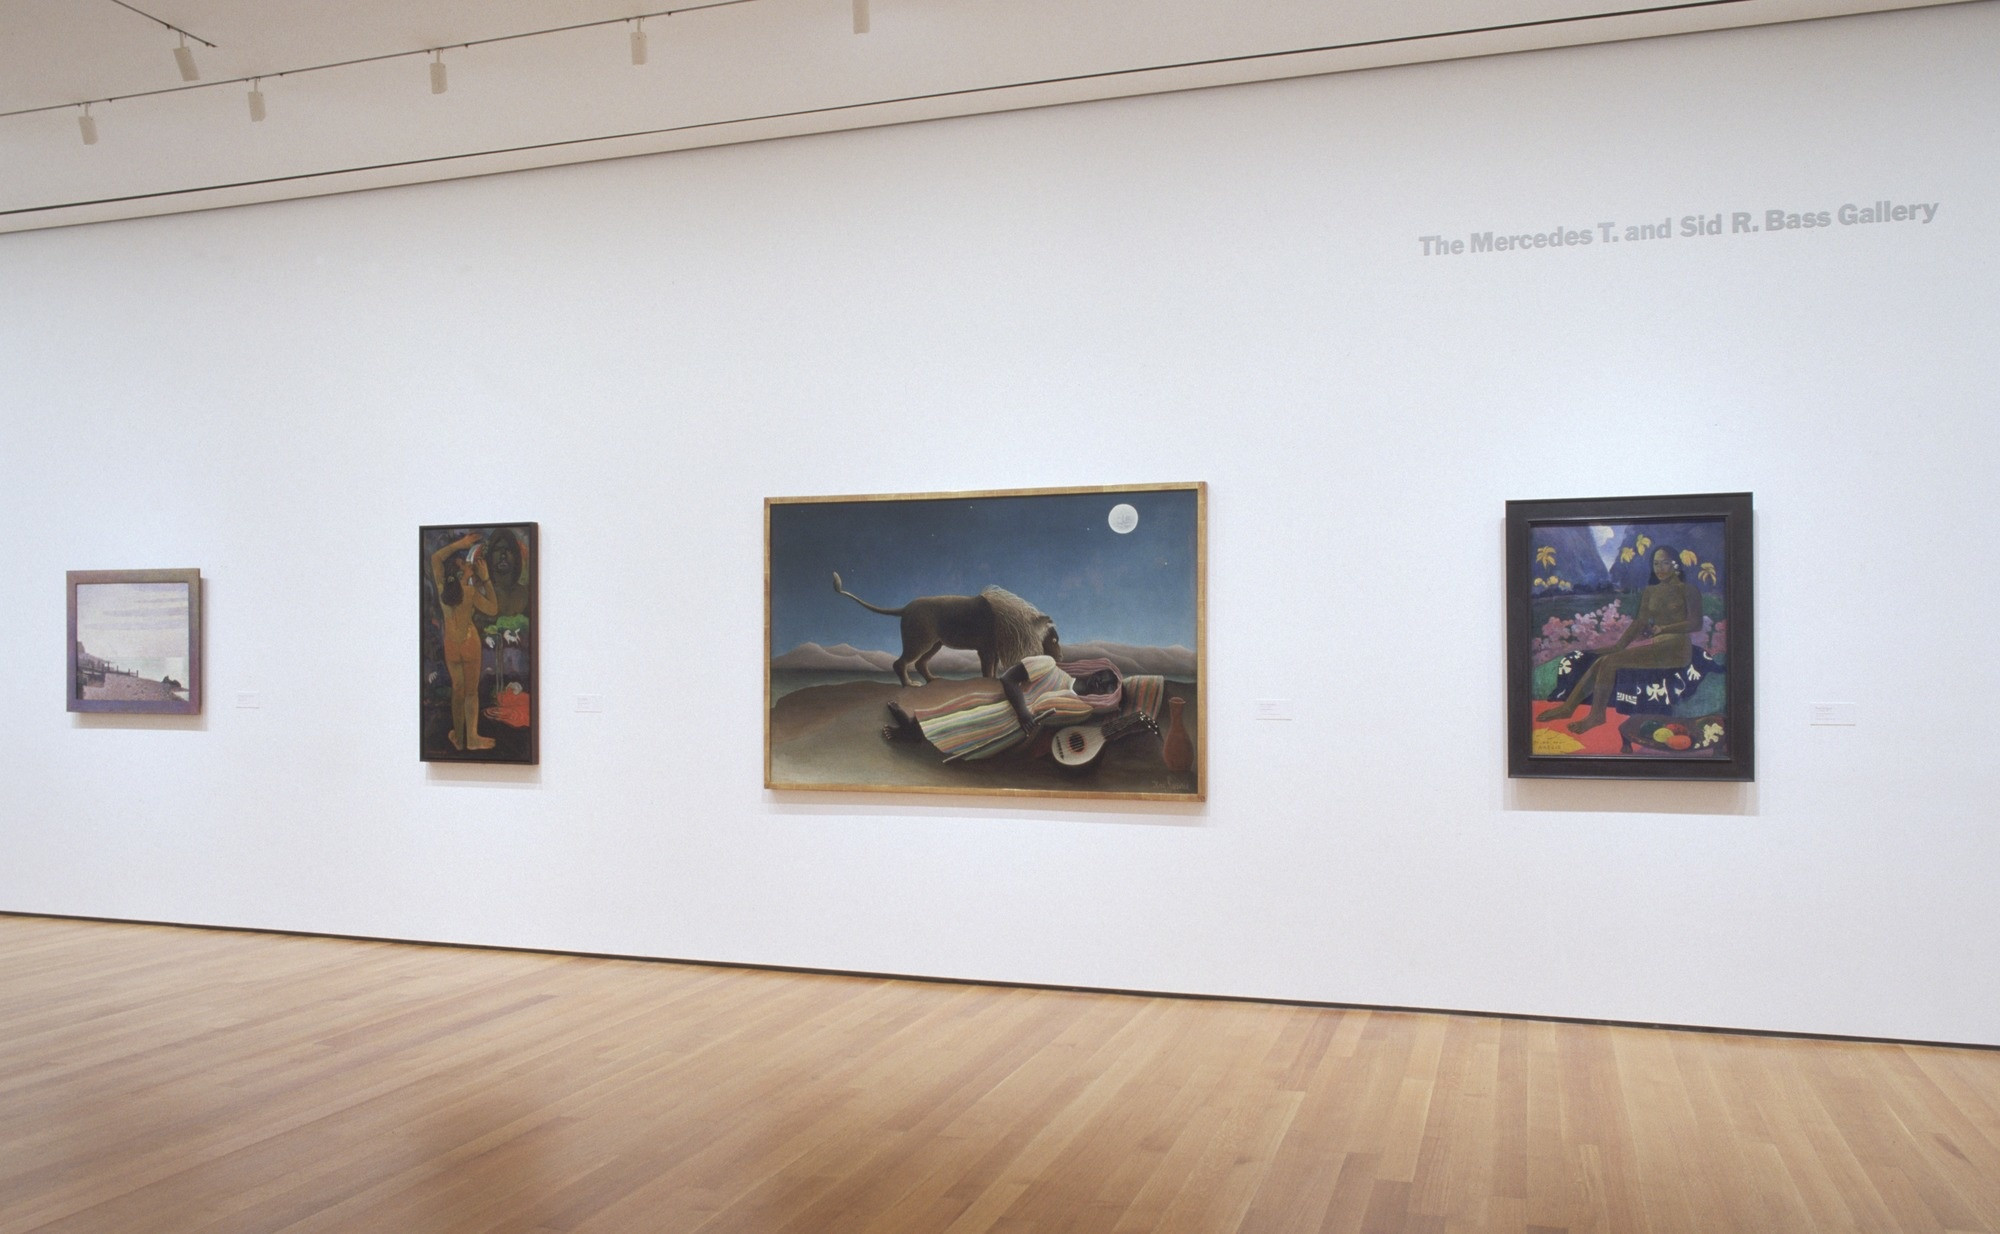 Installation view of the exhibition, Painting and Sculpture: Inaugural Installation. November 20, 2004–December 31, 2005. IN1931.4. Photograph by Thomas Griesel